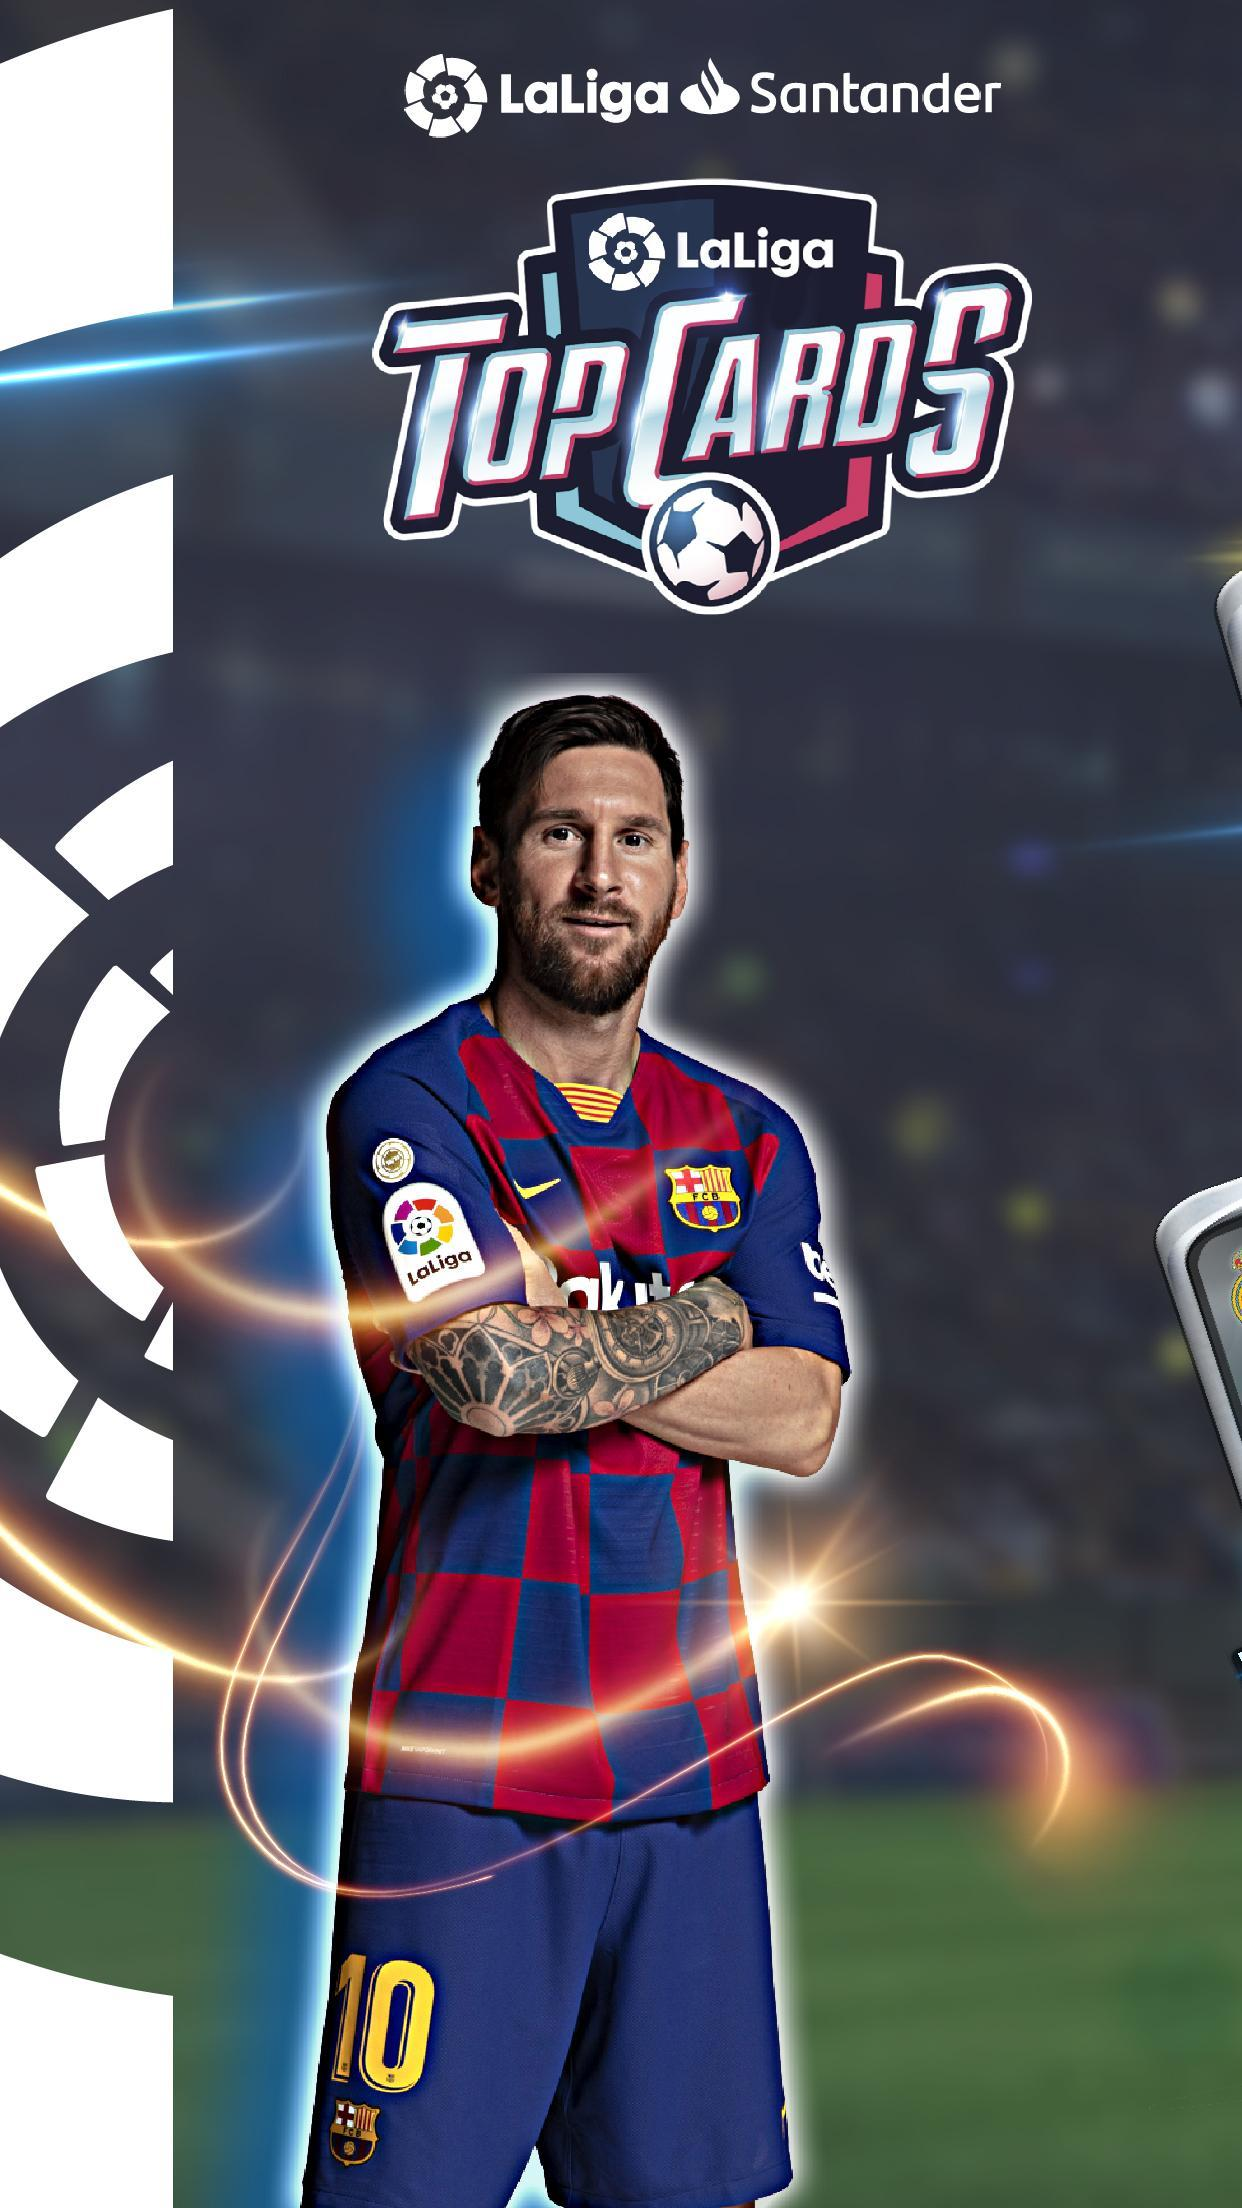 LaLiga Top Cards 2020 - Soccer Card Battle Game 4.1.4 Screenshot 1